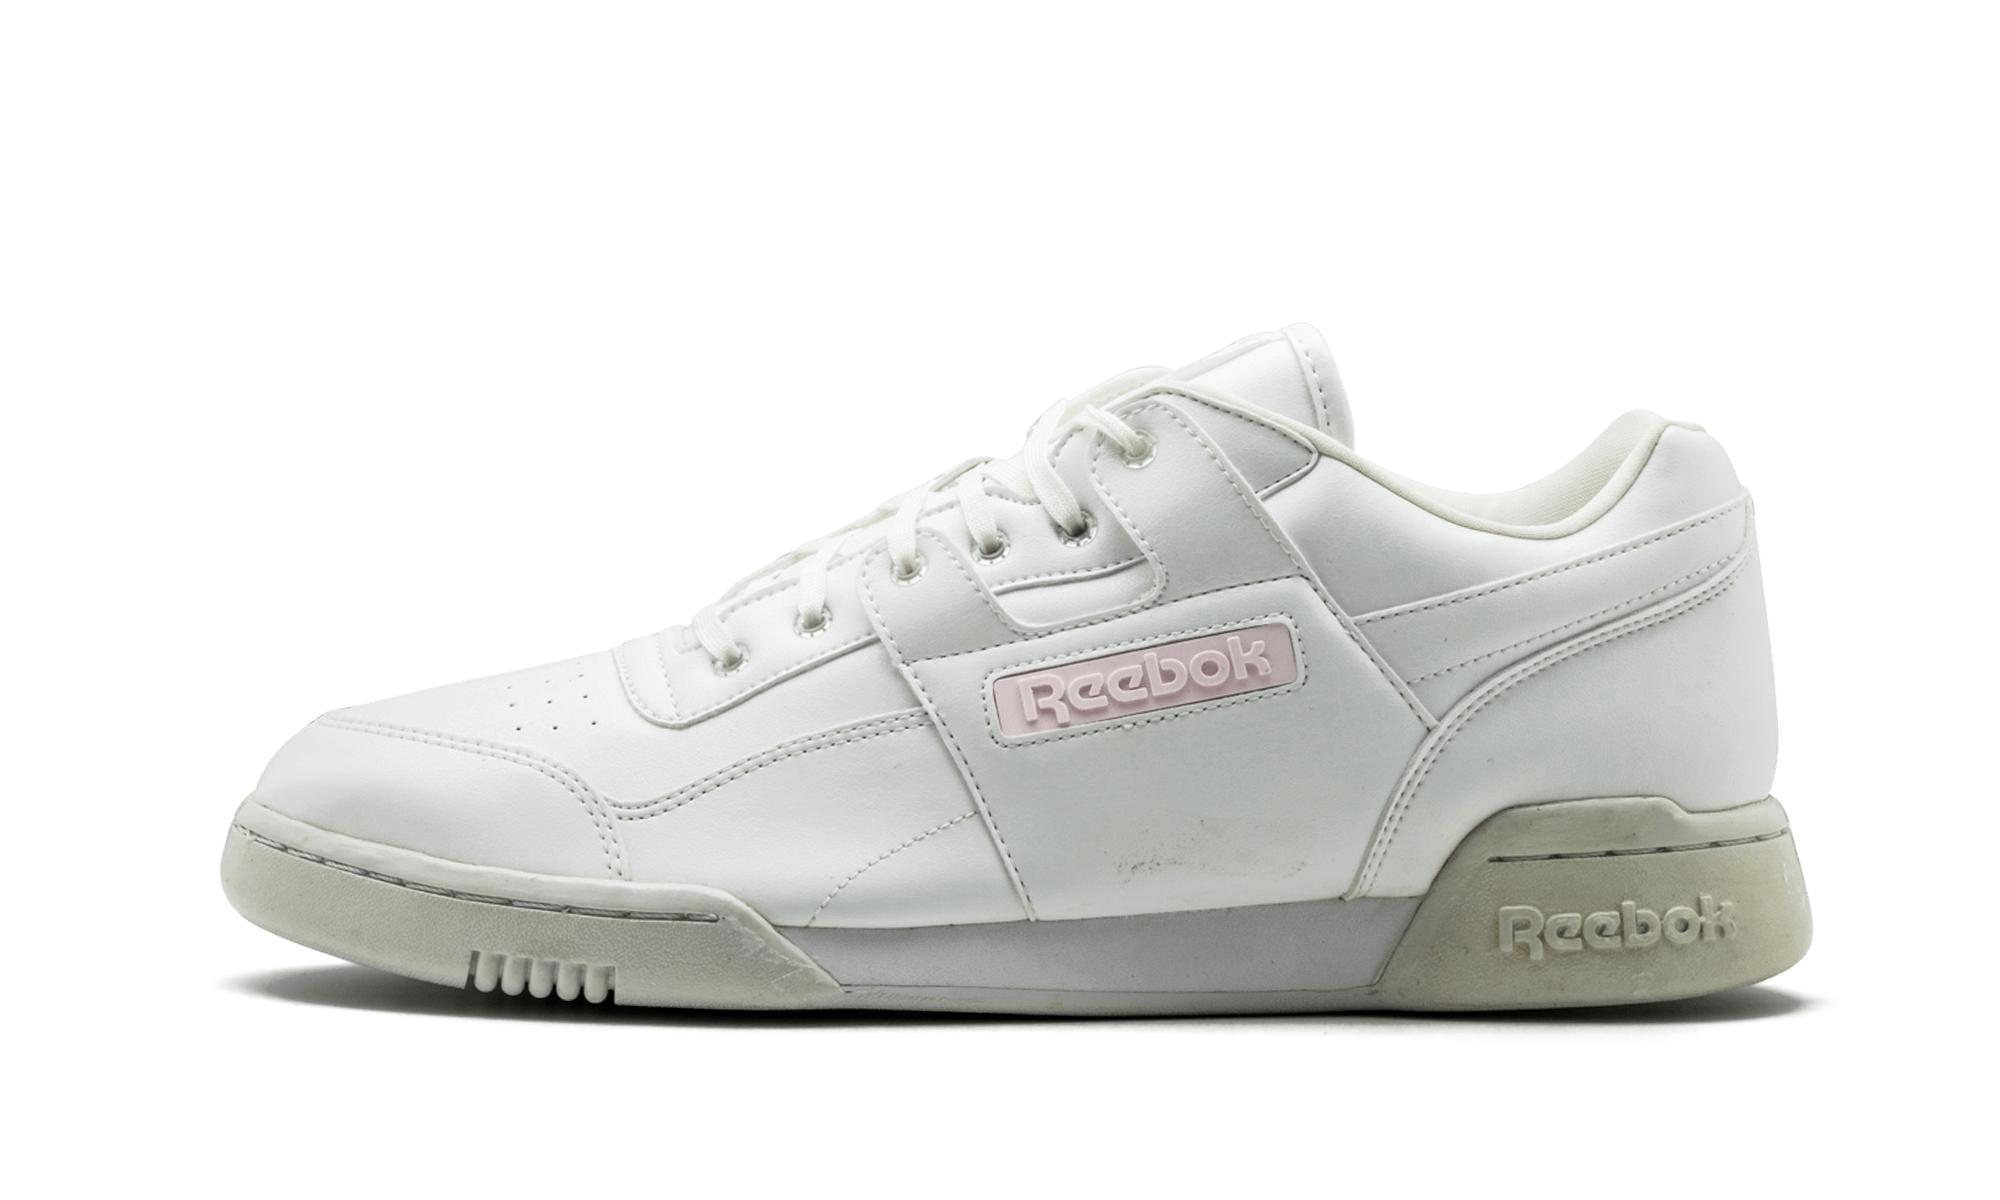 Lyst - Reebok Workout Plus 25th Anniversary in White for Men 663493ab8